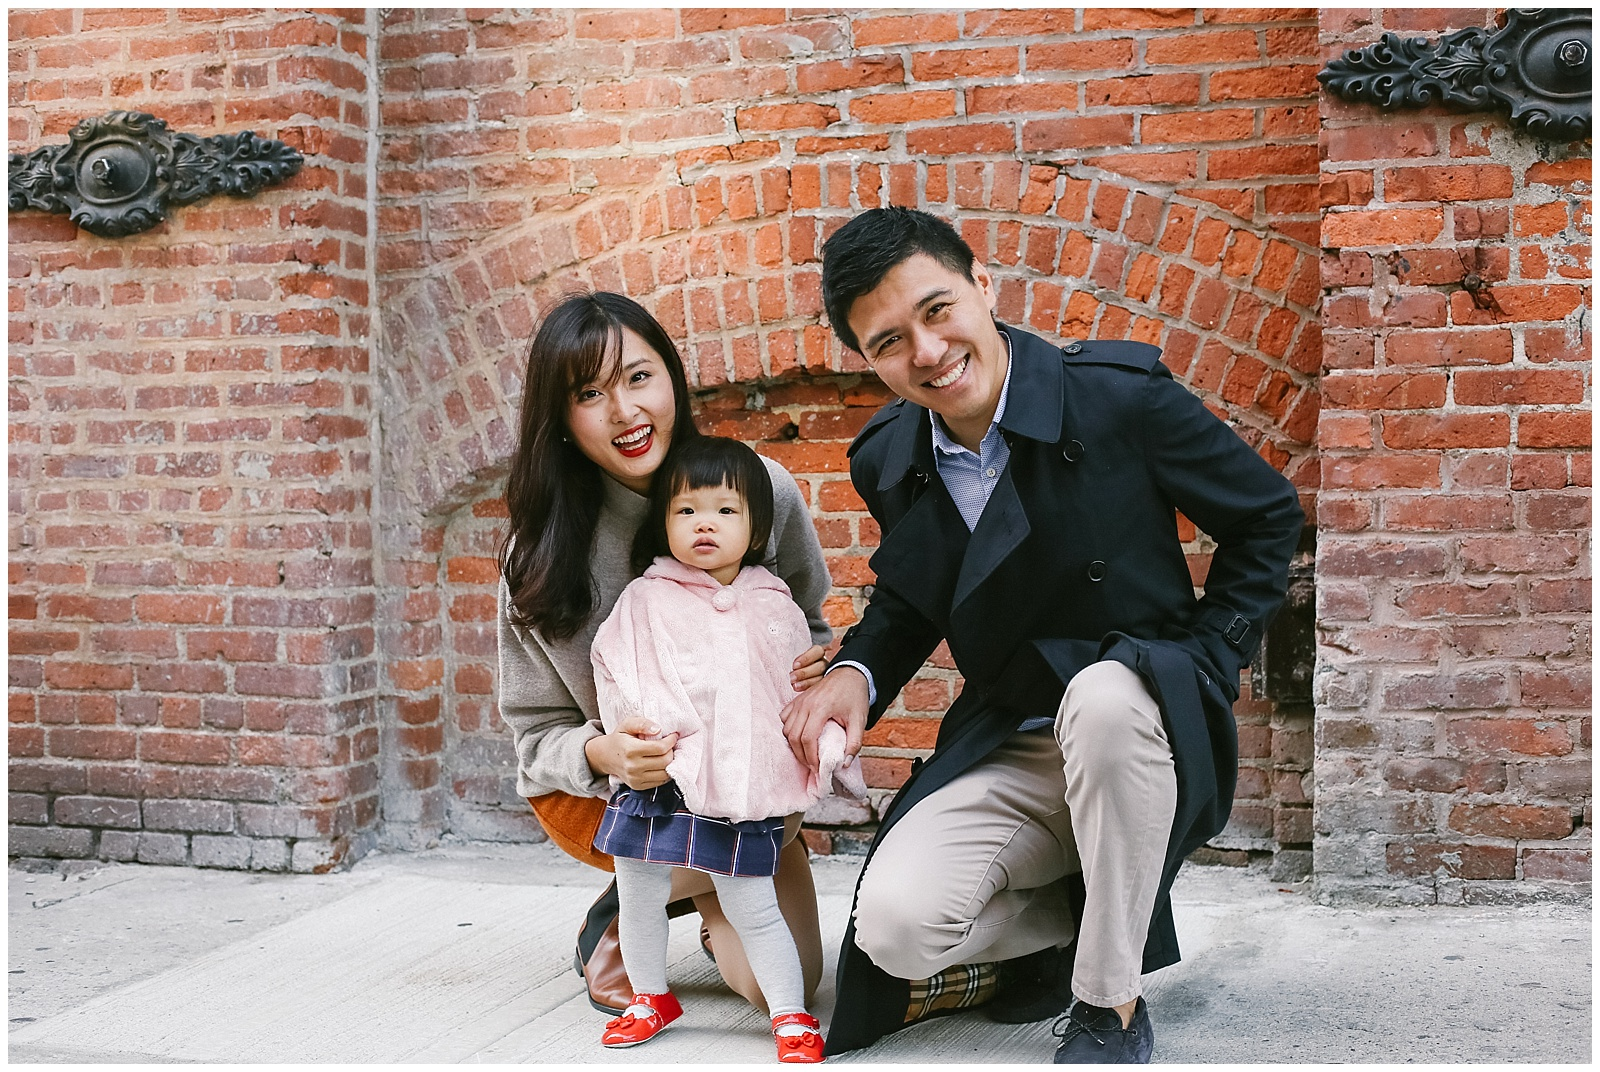 NYC family photographer photographs smiling asian family in DUMBO Brooklyn